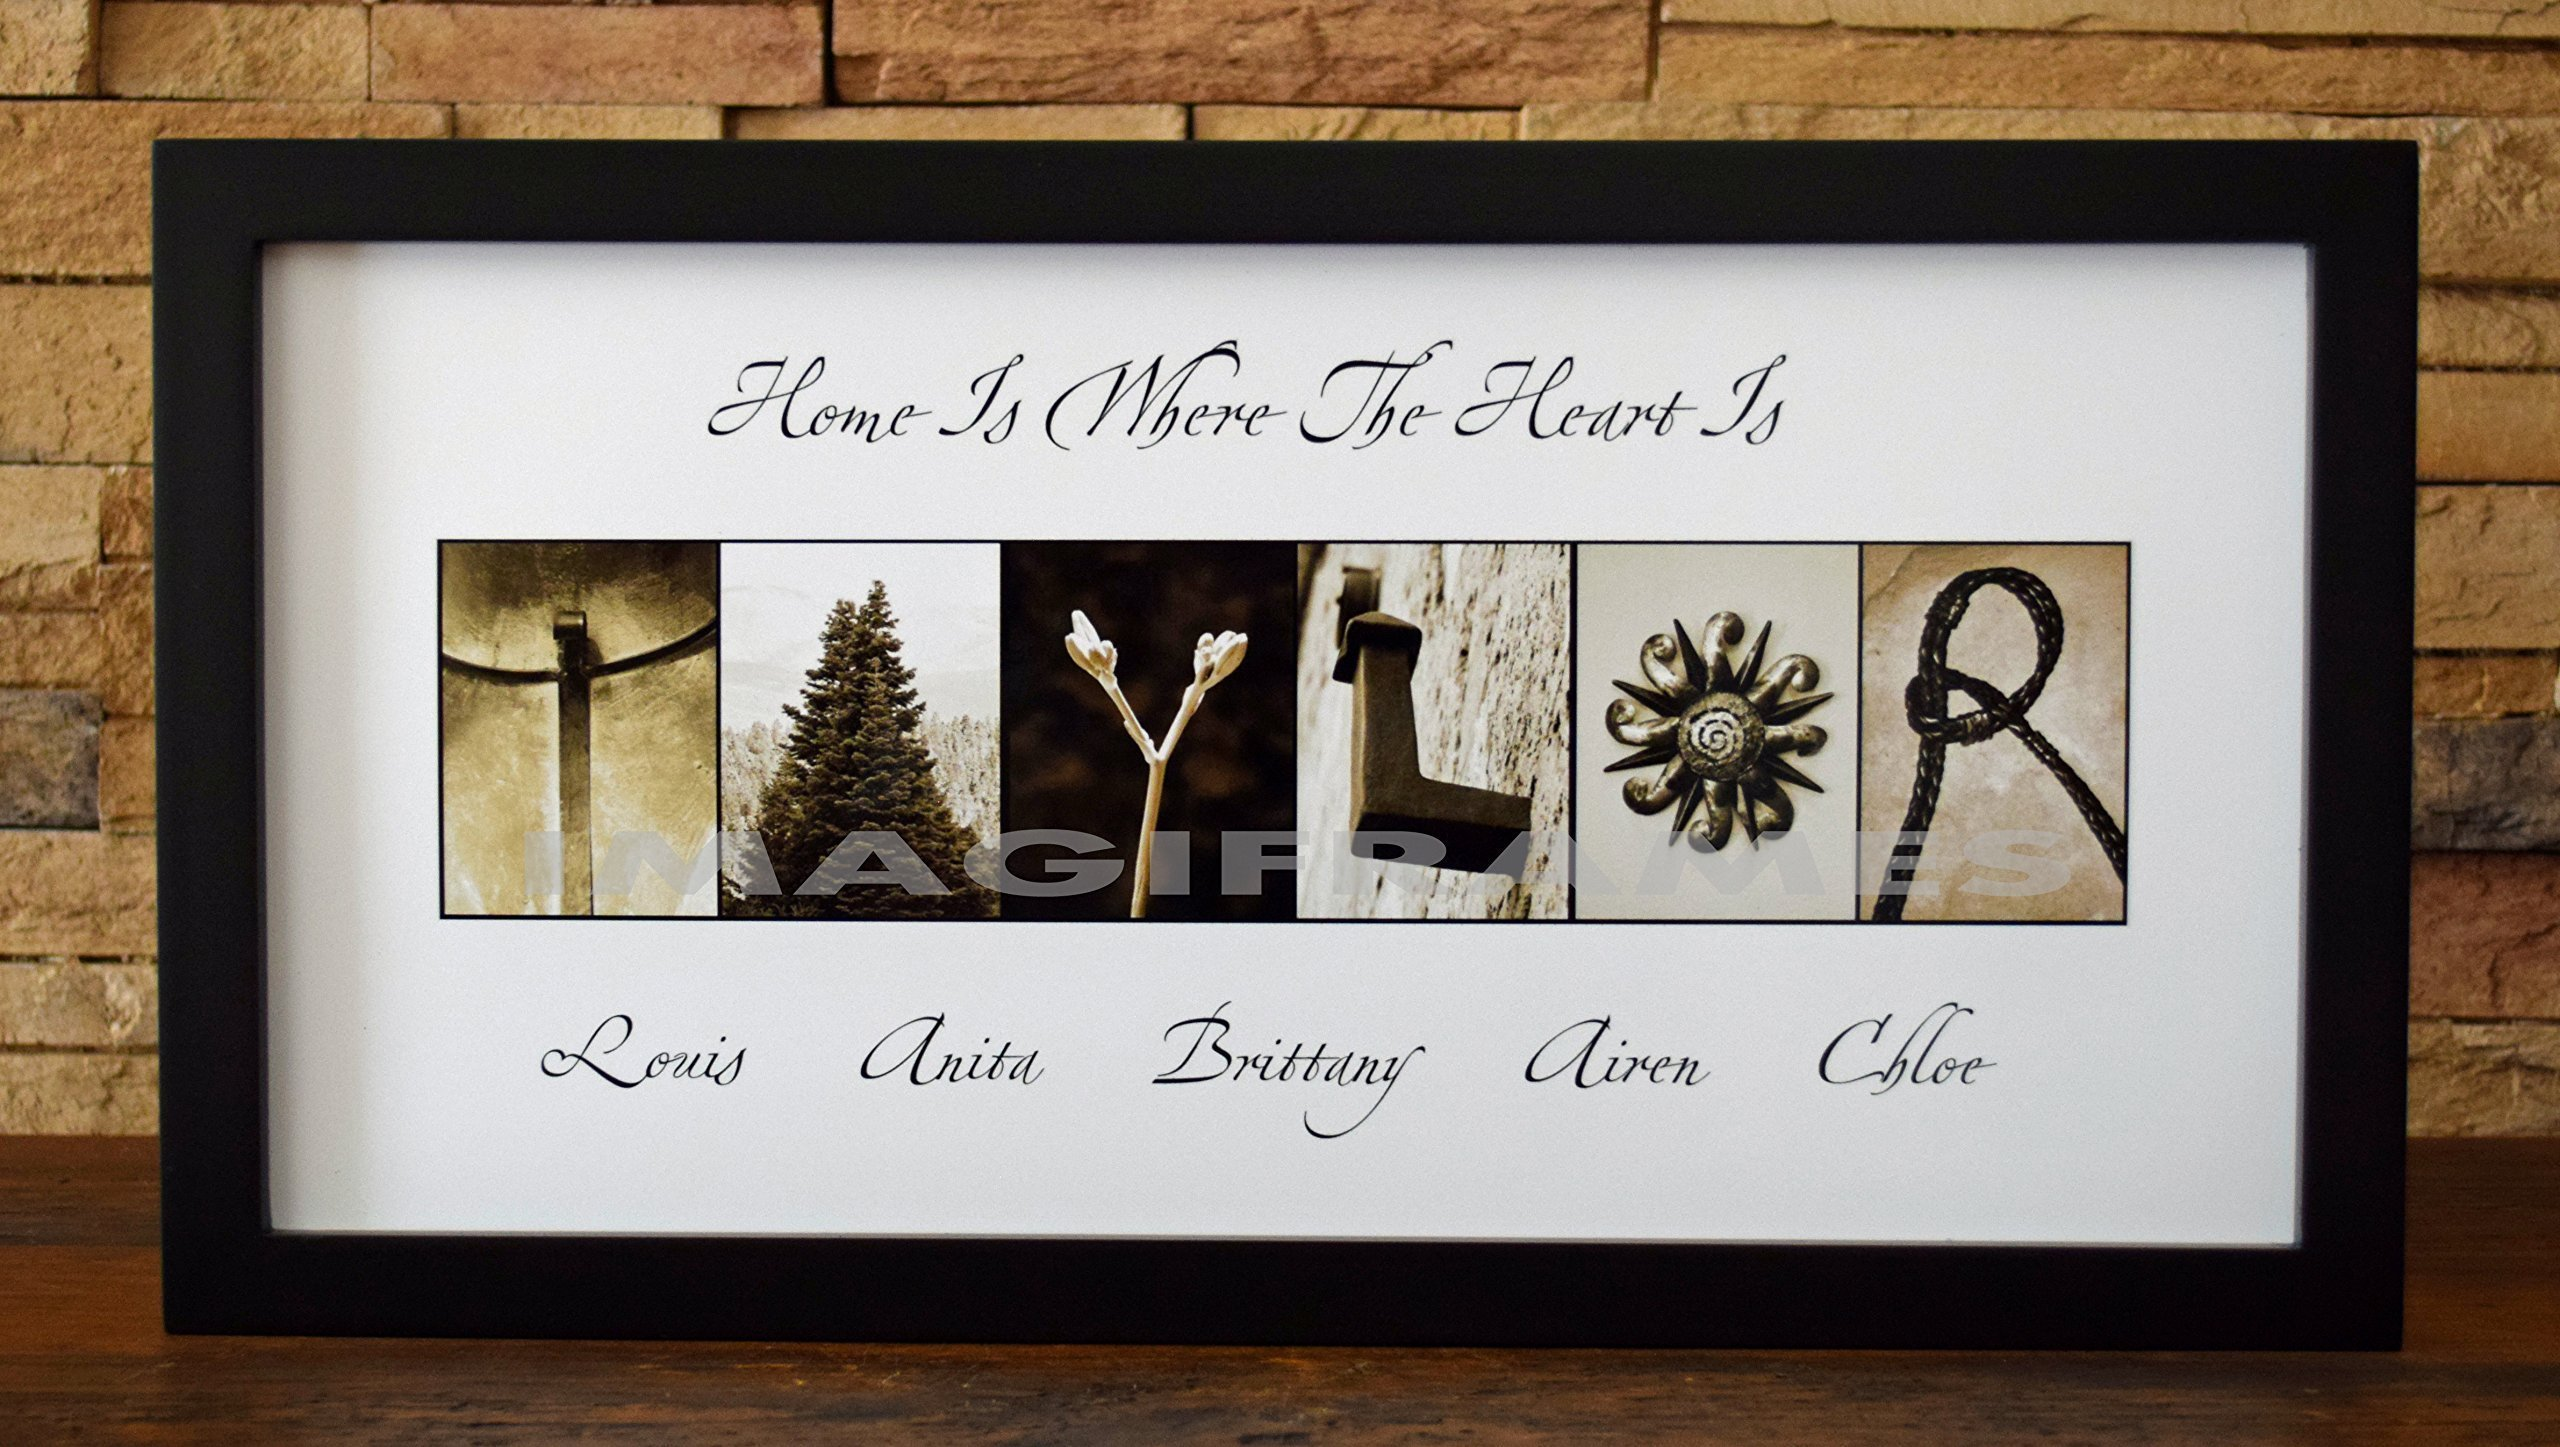 Home Is Where The Heart Is - Framed Photo Letter Art - Personalized Alphabet Photography - Custom Name Sign